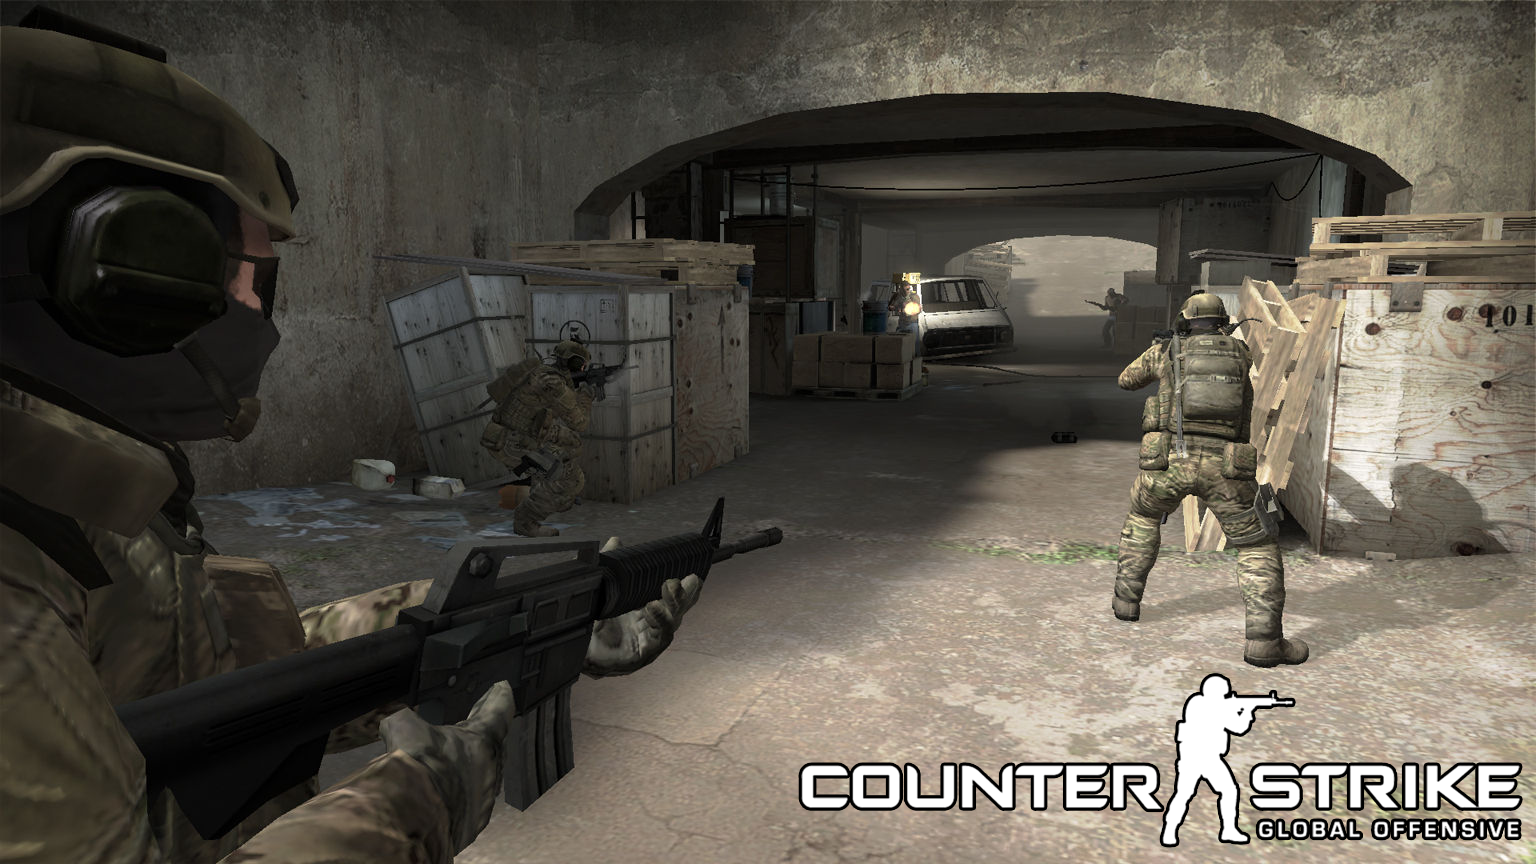 Counter Strike: Global Offensive Launches Aug 21 for Just $15